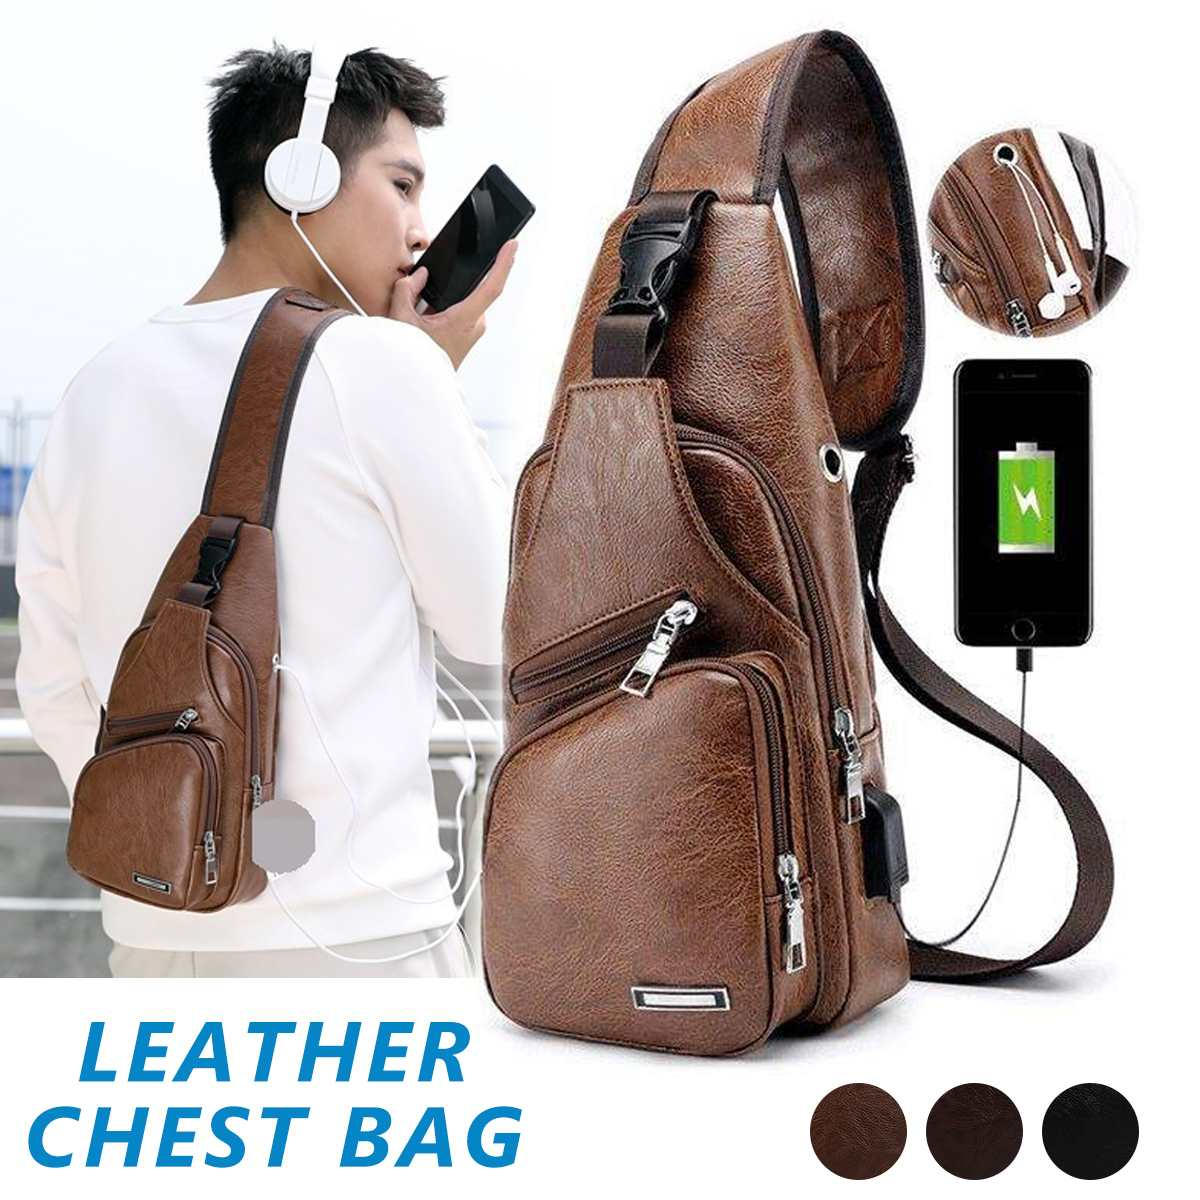 Men's Chest Bag Men Leather PU Chest Pack USB Charger Backbag With Headphone Hole Functional Travel Organizer Male Sling Bag